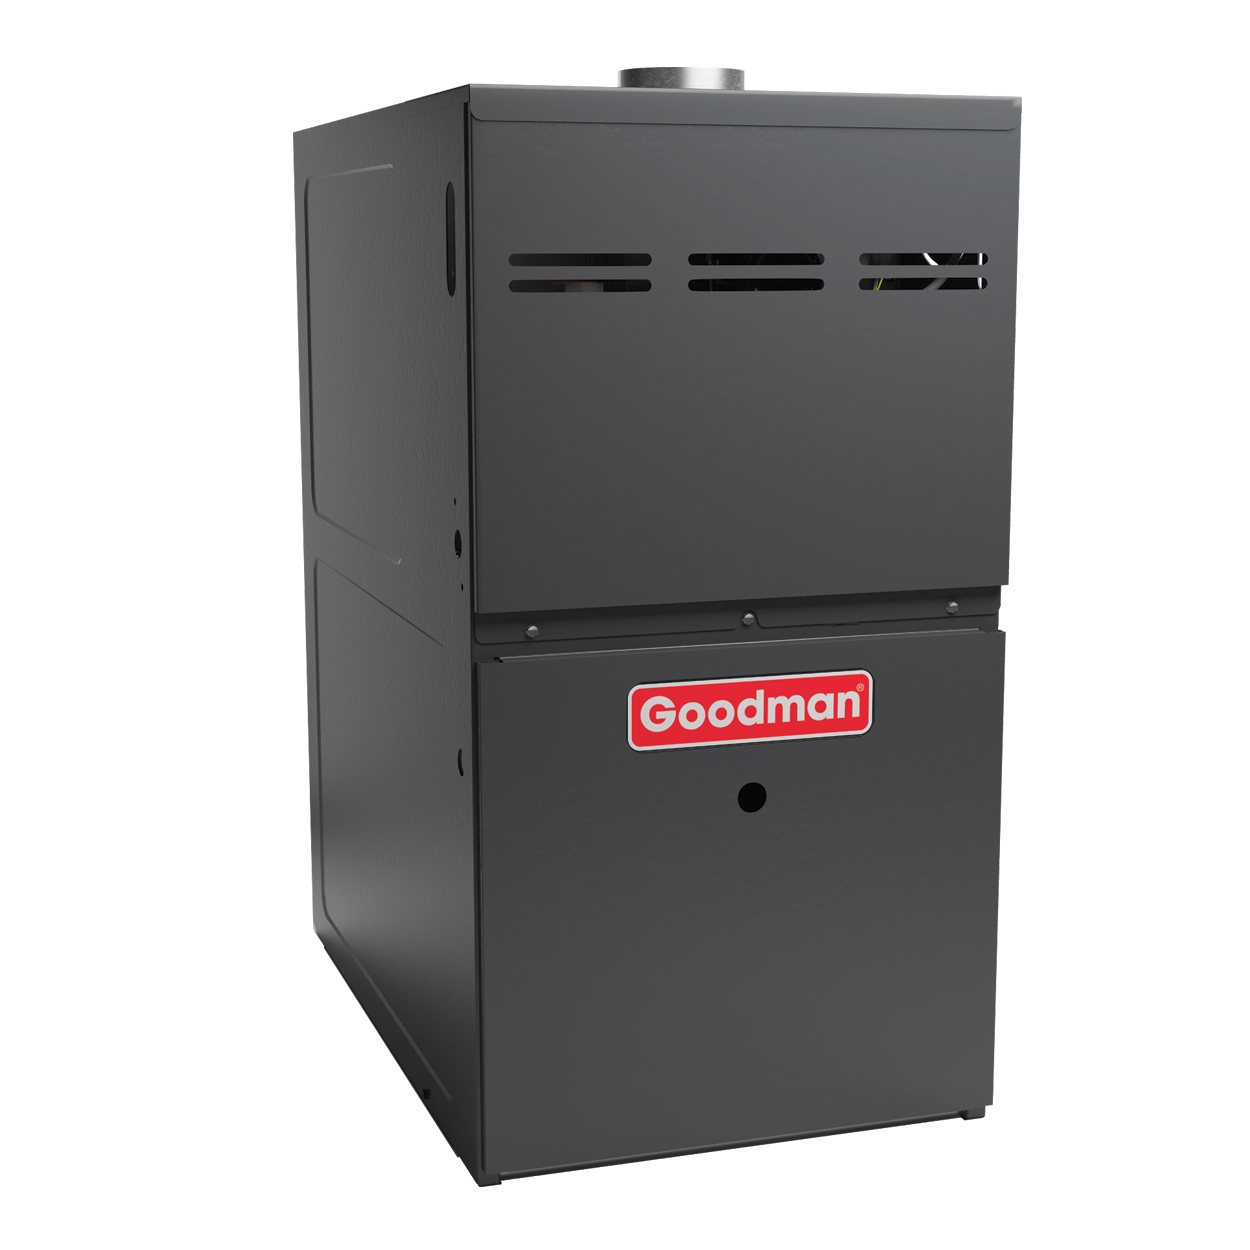 Goodman 60K 80% 2 Stage Furnace, Goodman 80% Gas Furnace - DIY Comfort Depot